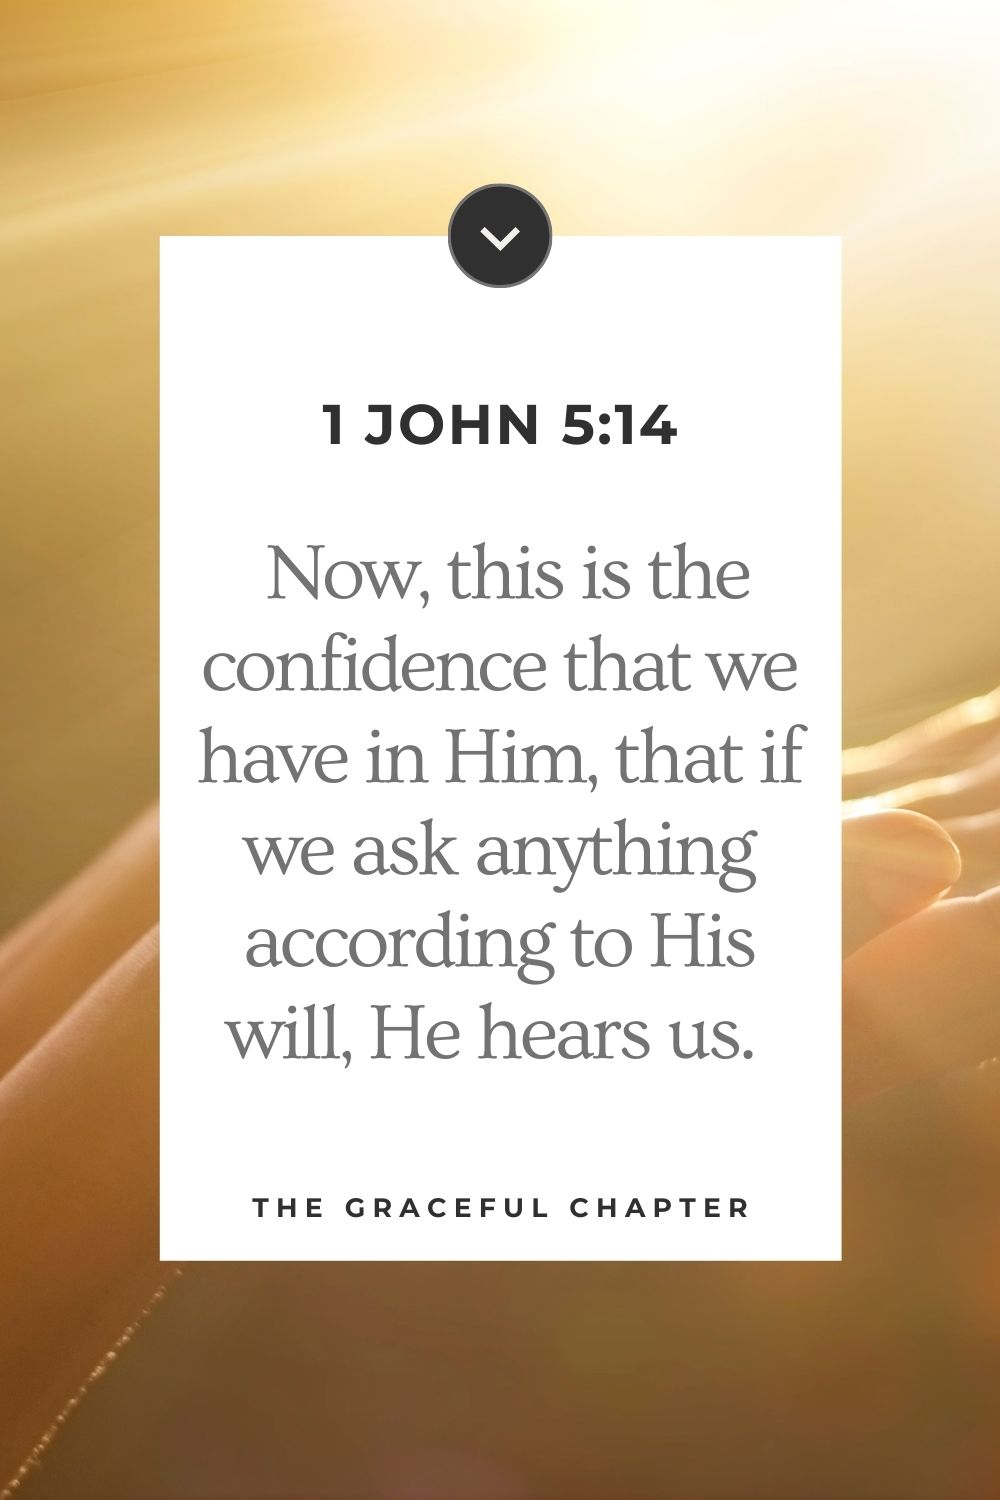 Now this is the confidence that we have in Him, that if we ask anything according to His will, He hears us.